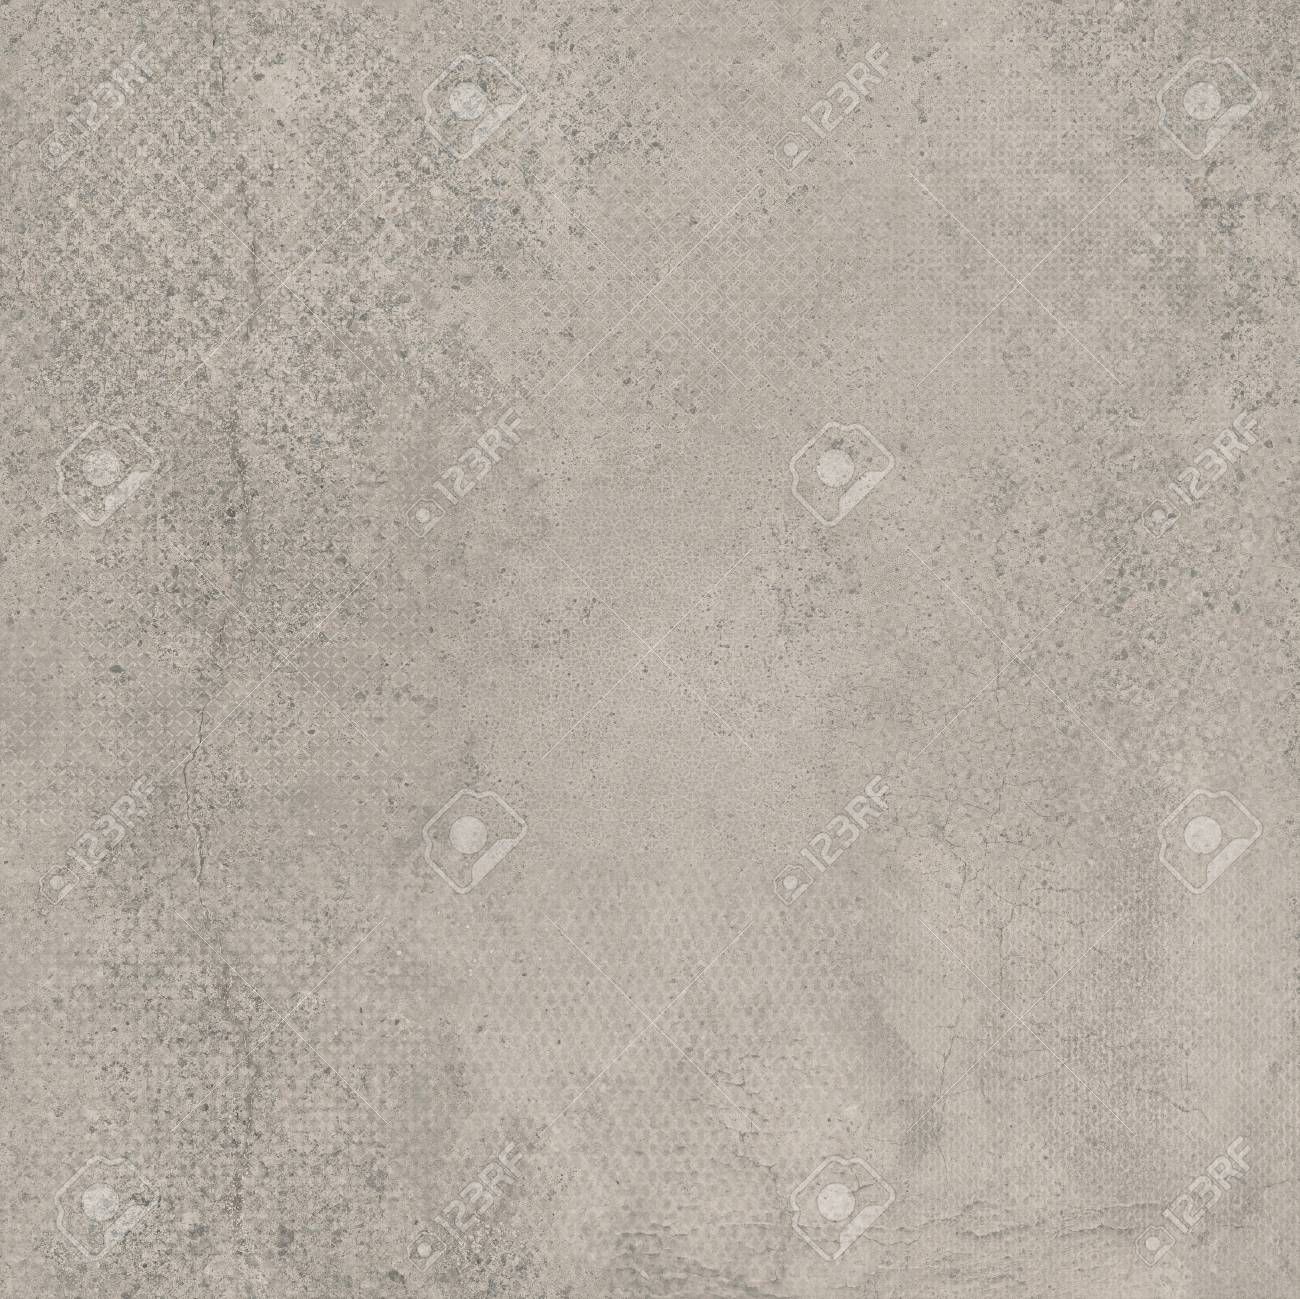 Grey Ceramic Texture Background Closeup Floor Tile Surface With